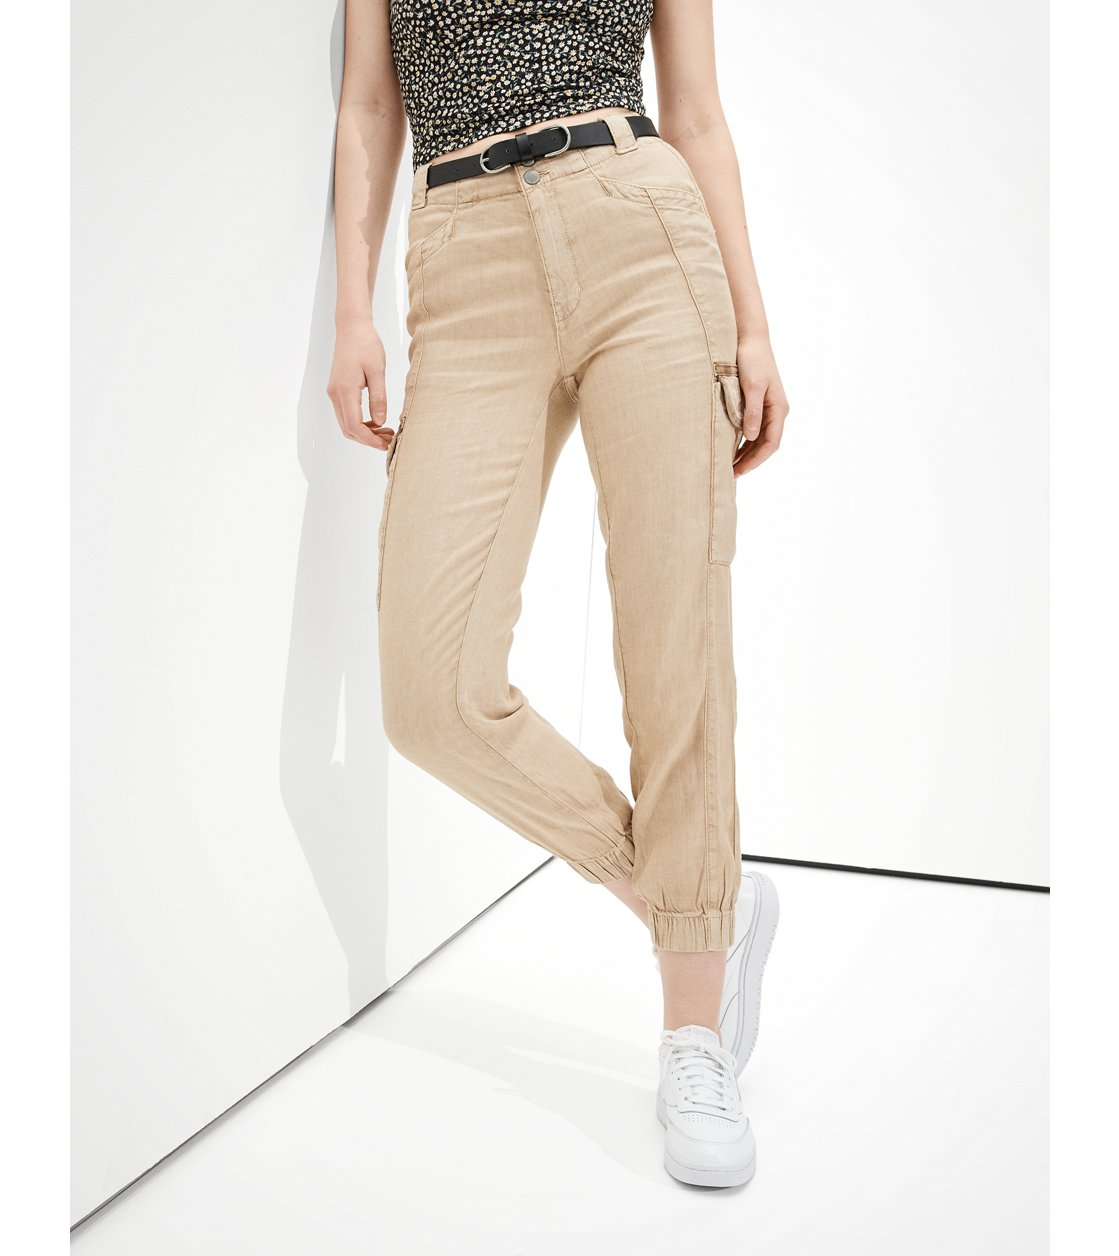 American Eagle AE Linen Relaxed Mom Jogger Pant